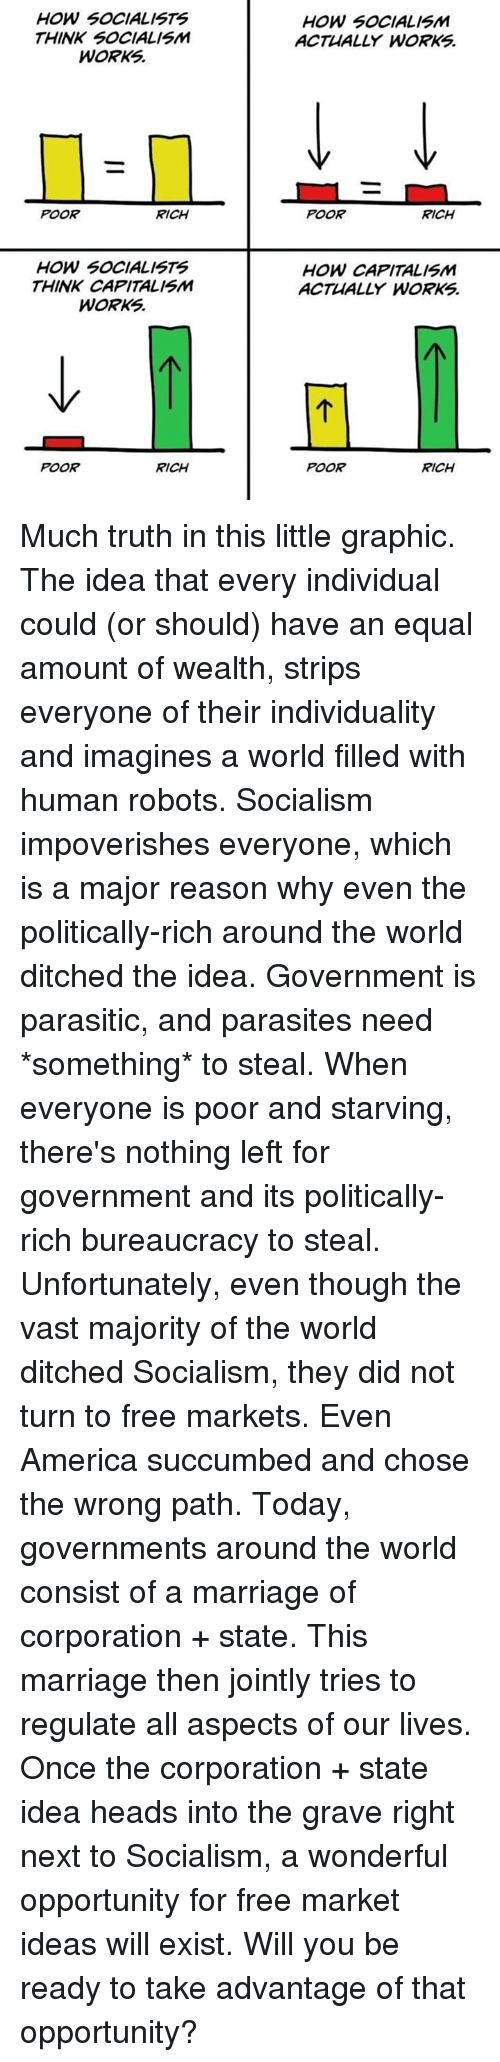 imagines: HOW SOCIALISTS  THINK SOCIALISM  WORKS.  HOW SOCIALISM  ACTUALLY WORKS.  POOR  RICH  POOR  RICH  HOW SOCIALISTS  THINK CAPITALISM  WORKS  HOW CAPITALISM  ACTUALLY WORKS  POOR  RICH  POOR  RICH Much truth in this little graphic.  The idea that every individual could (or should) have an equal amount of wealth, strips everyone of their individuality and imagines a world filled with human robots.  Socialism impoverishes everyone, which is a major reason why even the politically-rich around the world ditched the idea.   Government is parasitic, and parasites need *something* to steal. When everyone is poor and starving, there's nothing left for government and its politically-rich bureaucracy to steal.  Unfortunately, even though the vast majority of the world ditched Socialism, they did not turn to free markets. Even America succumbed and chose the wrong path.  Today, governments around the world consist of a marriage of corporation + state. This marriage then jointly tries to regulate all aspects of our lives.  Once the corporation + state idea heads into the grave right next to Socialism, a wonderful opportunity for free market ideas will exist.  Will you be ready to take advantage of that opportunity?